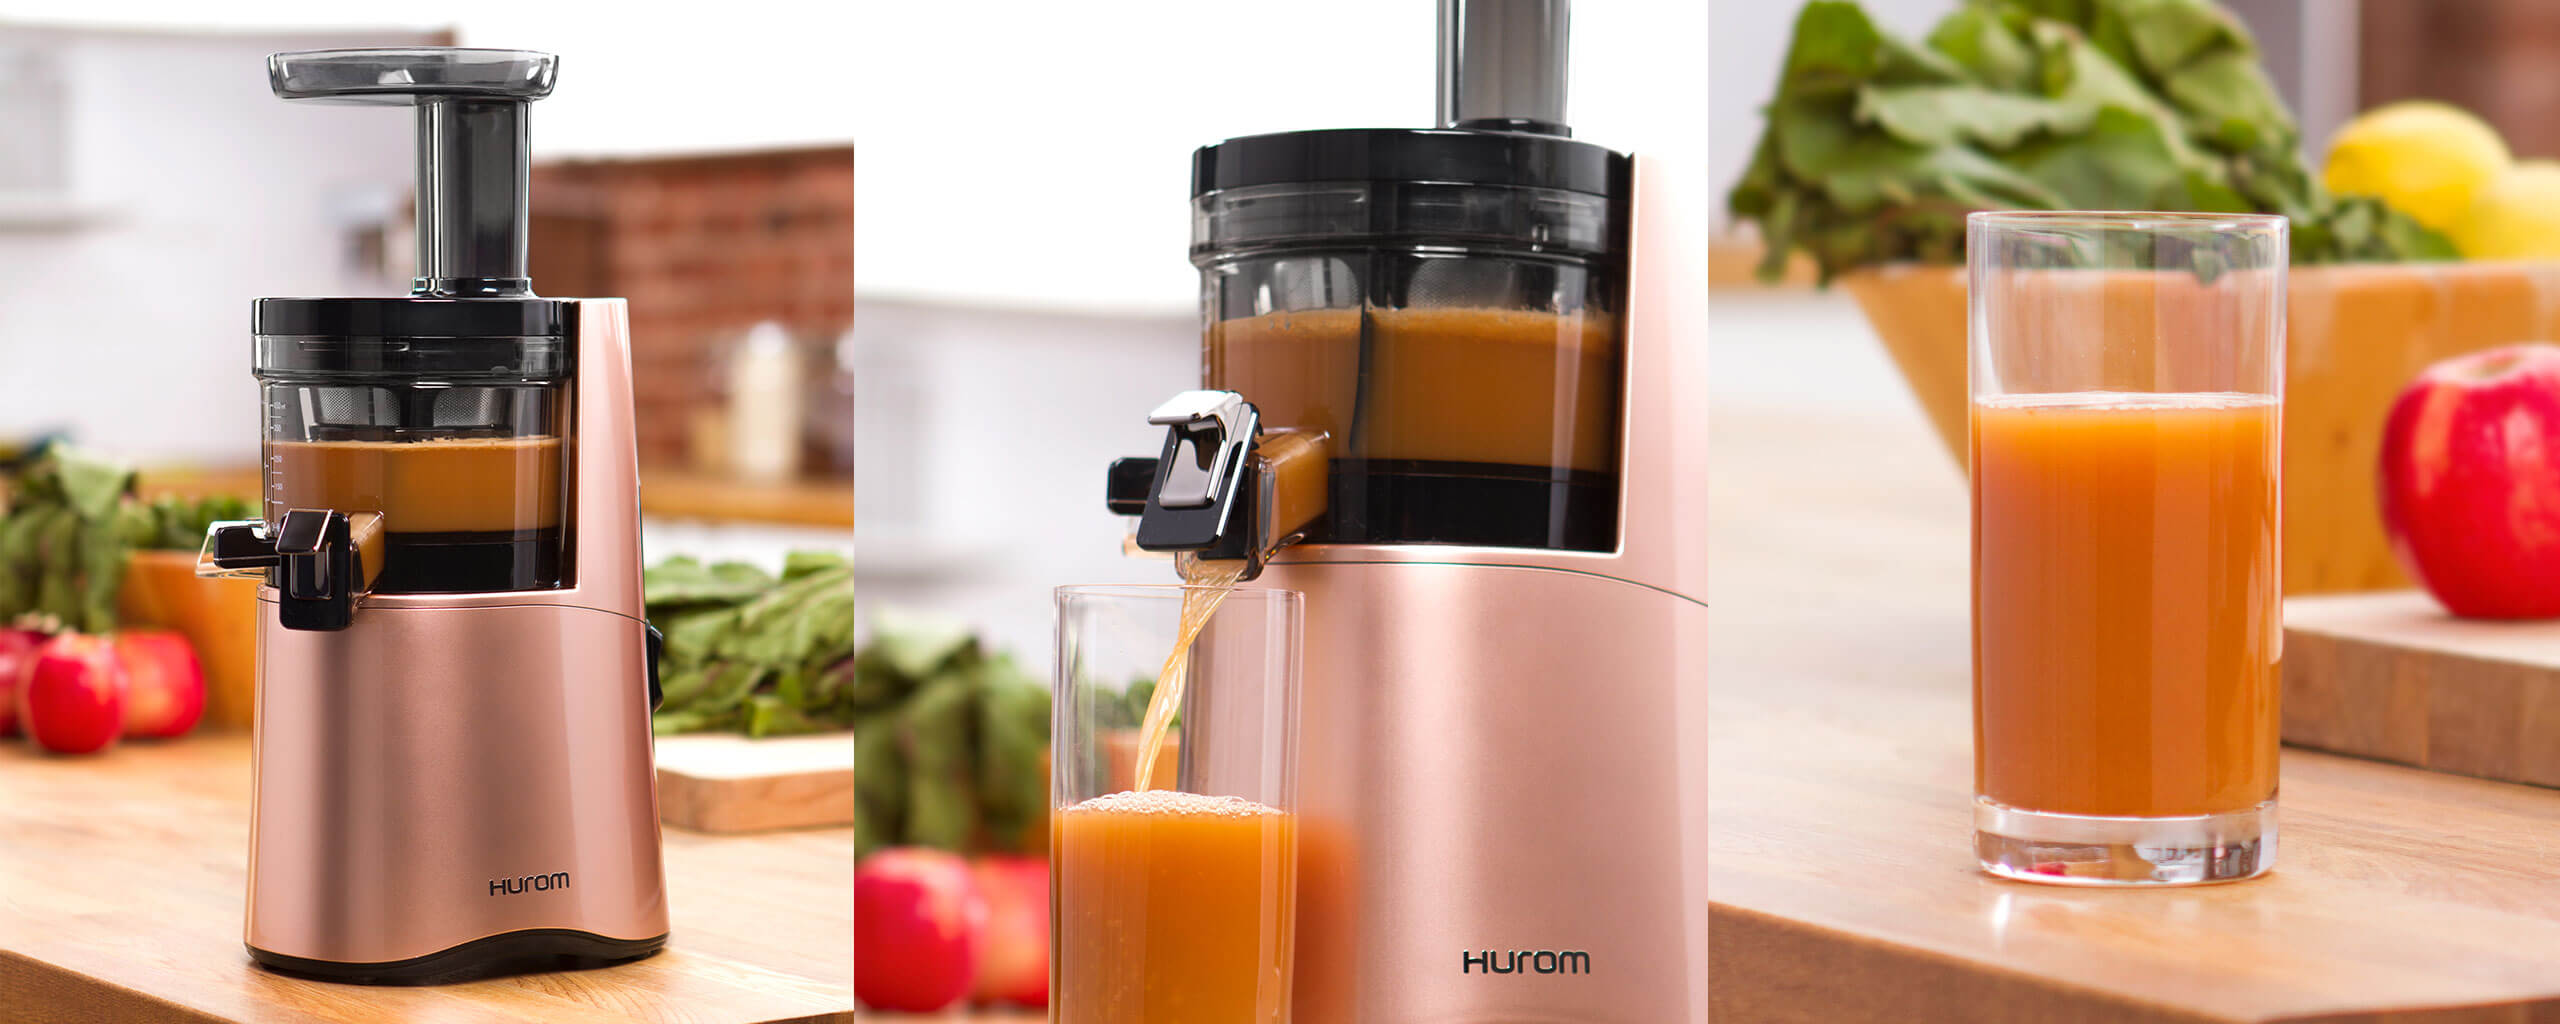 Hurom H Aa Slow Juicer Rose Gold : H-AA Slow Juicer Hurom